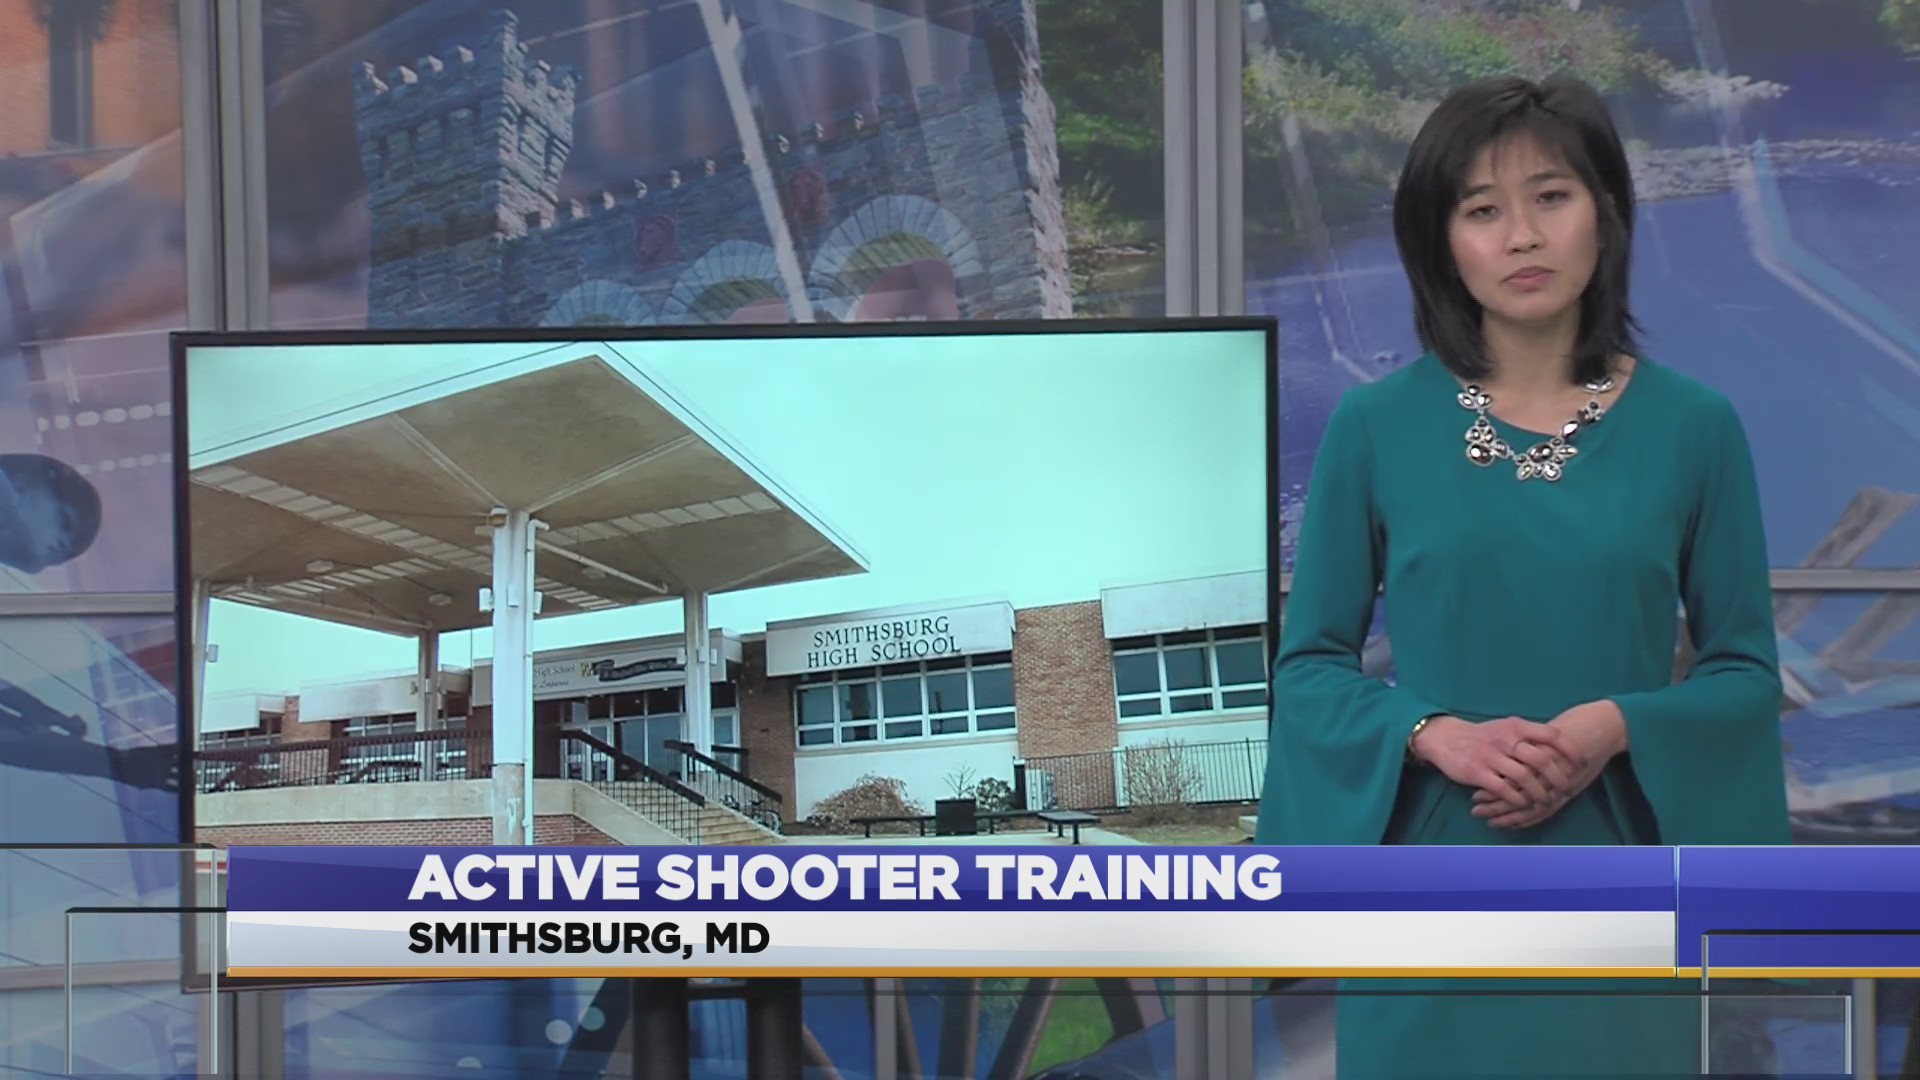 SMITHSBURG_EMS_ACTIVE_SHOOTER_TRAINING_0_20180317232858